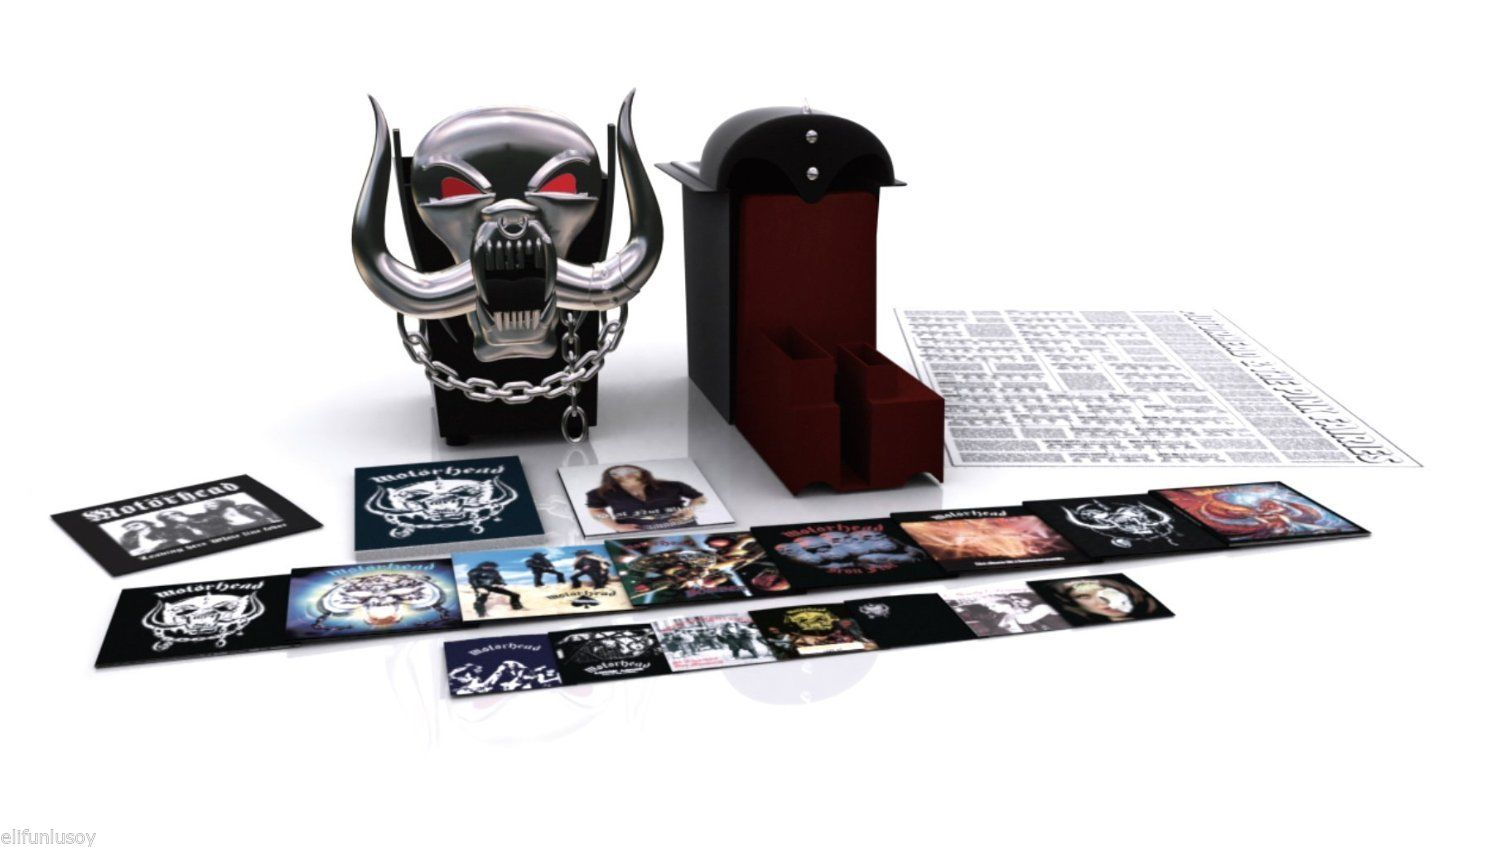 Win the Limited Edition Motorhead Box Set housed in a replica of Motorhead's iconic pig skull!